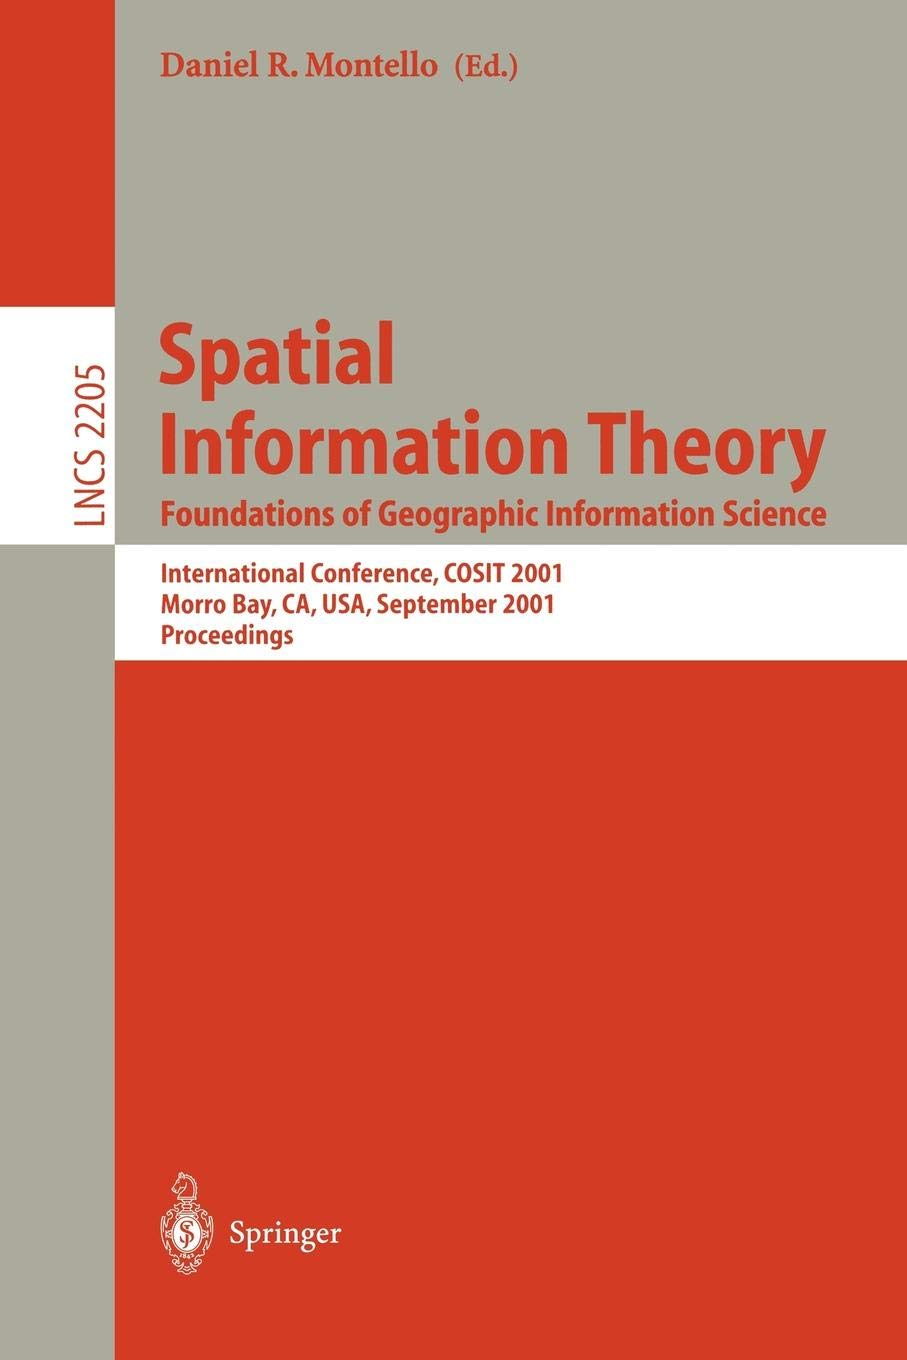 Spatial Information Theory: Foundations of Geographic Information Science 2001